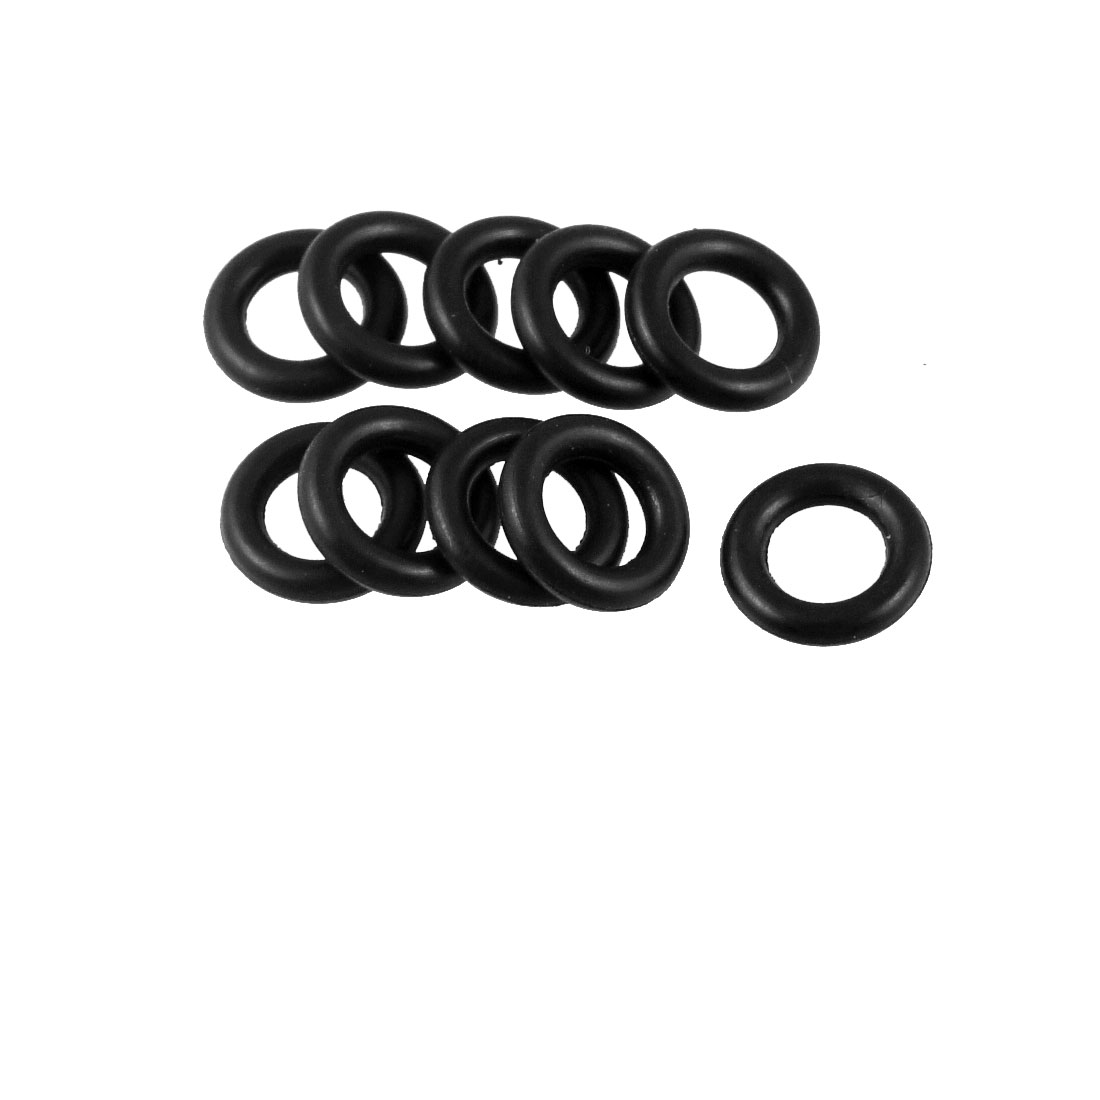 10 Pcs 11mm x 2mm Rubber Sealing Oil Filter O Rings Gaskets